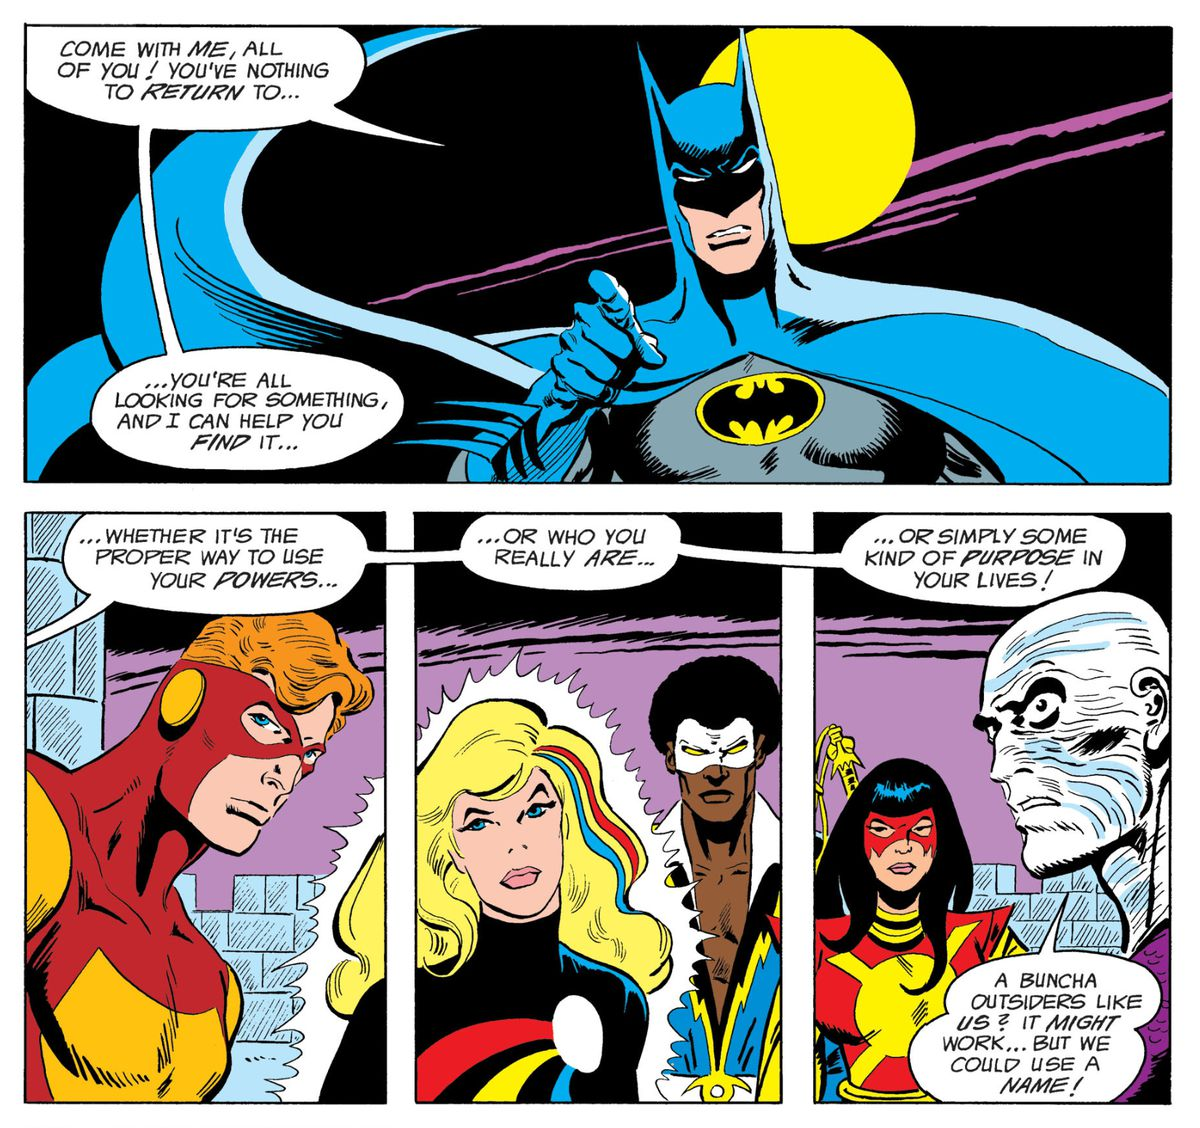 """Whether the Outsiders — Geo-Force, Halo, Black Lightning, Katana, and Metamorpho — are looking for the proper way to use their powers, who they really are, or """"simply some kind of purpose in your lives,"""" Batman says he can help them find it, in Batman and the Outsiders #2, DC Comics (1983)."""